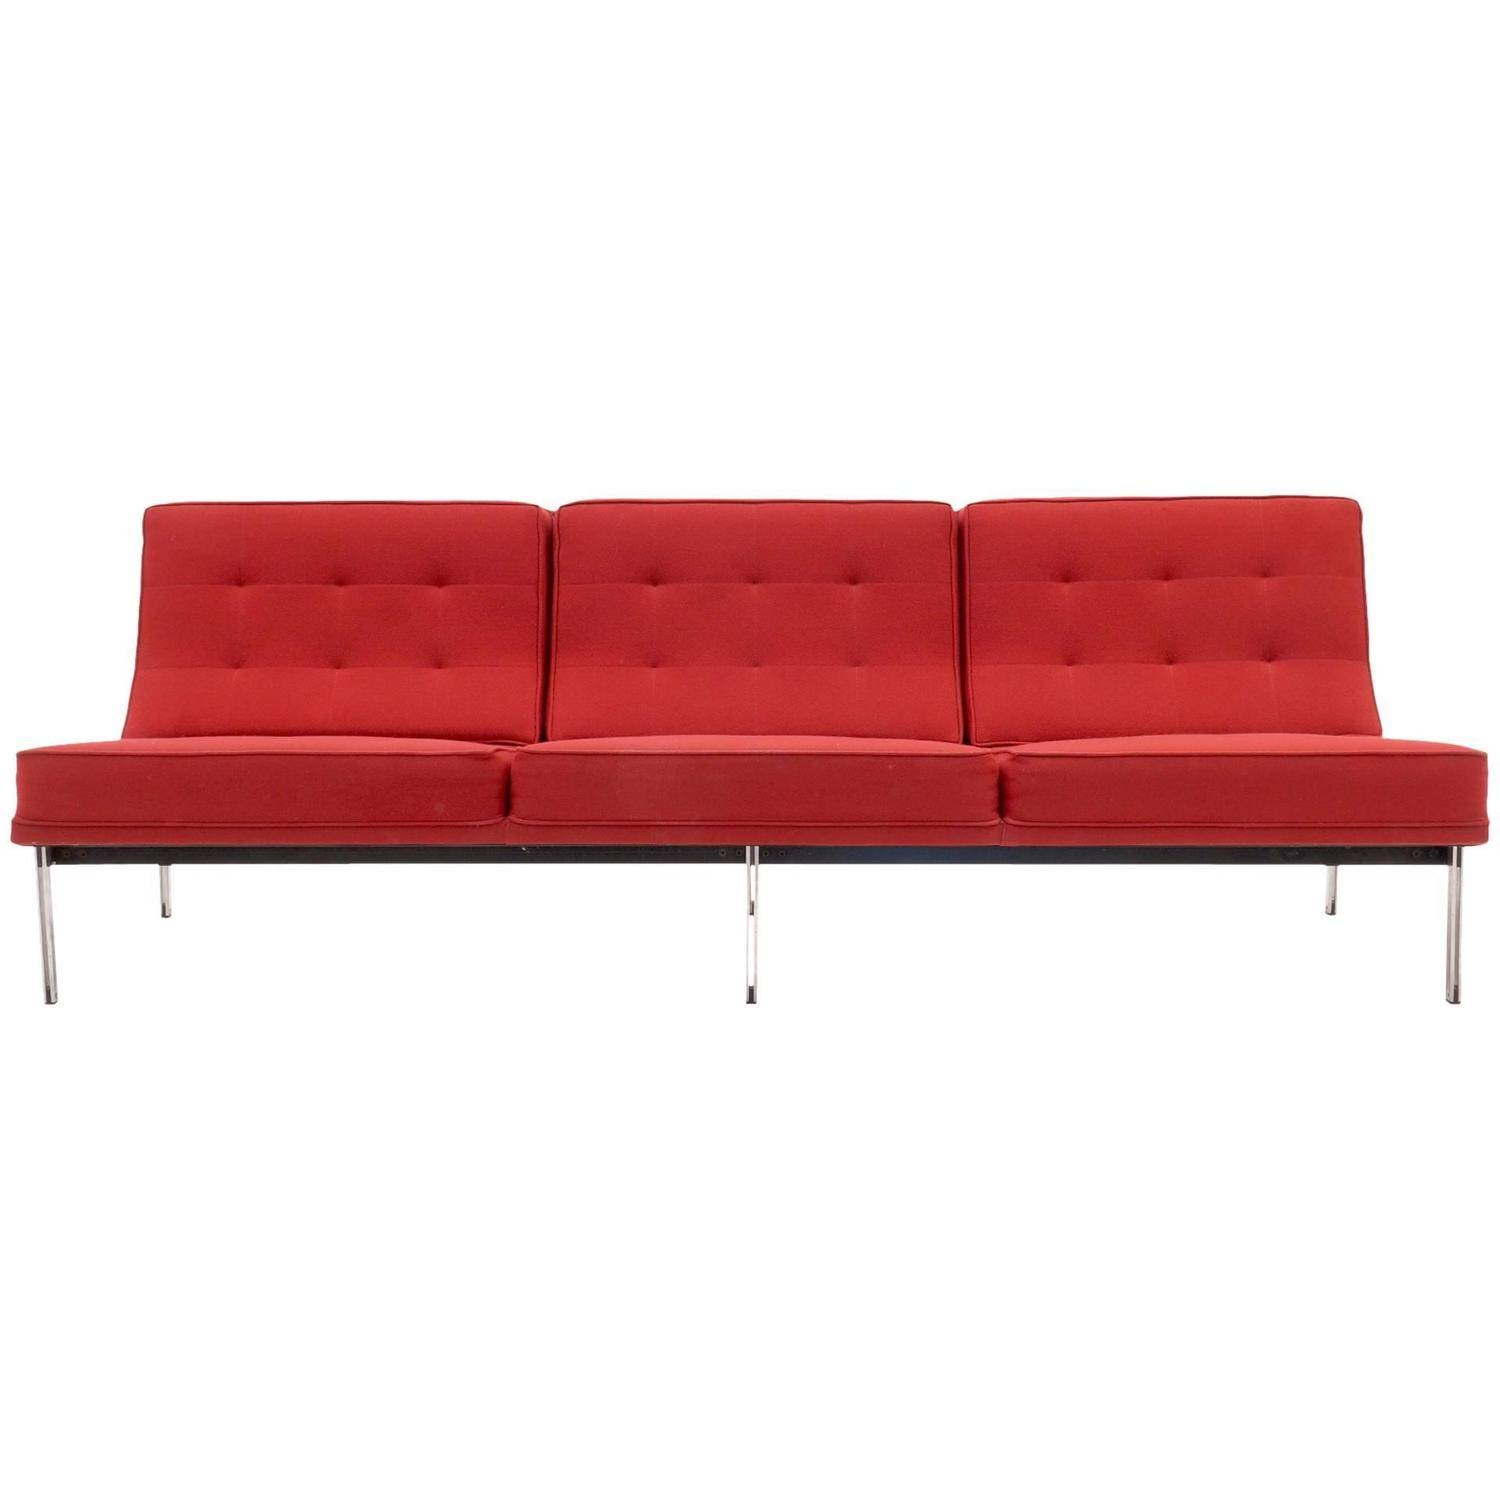 Florence Knoll Parallel Bar Three-Seat Armless Sofa Red Wool inside Florence Sofa Beds (Image 3 of 25)